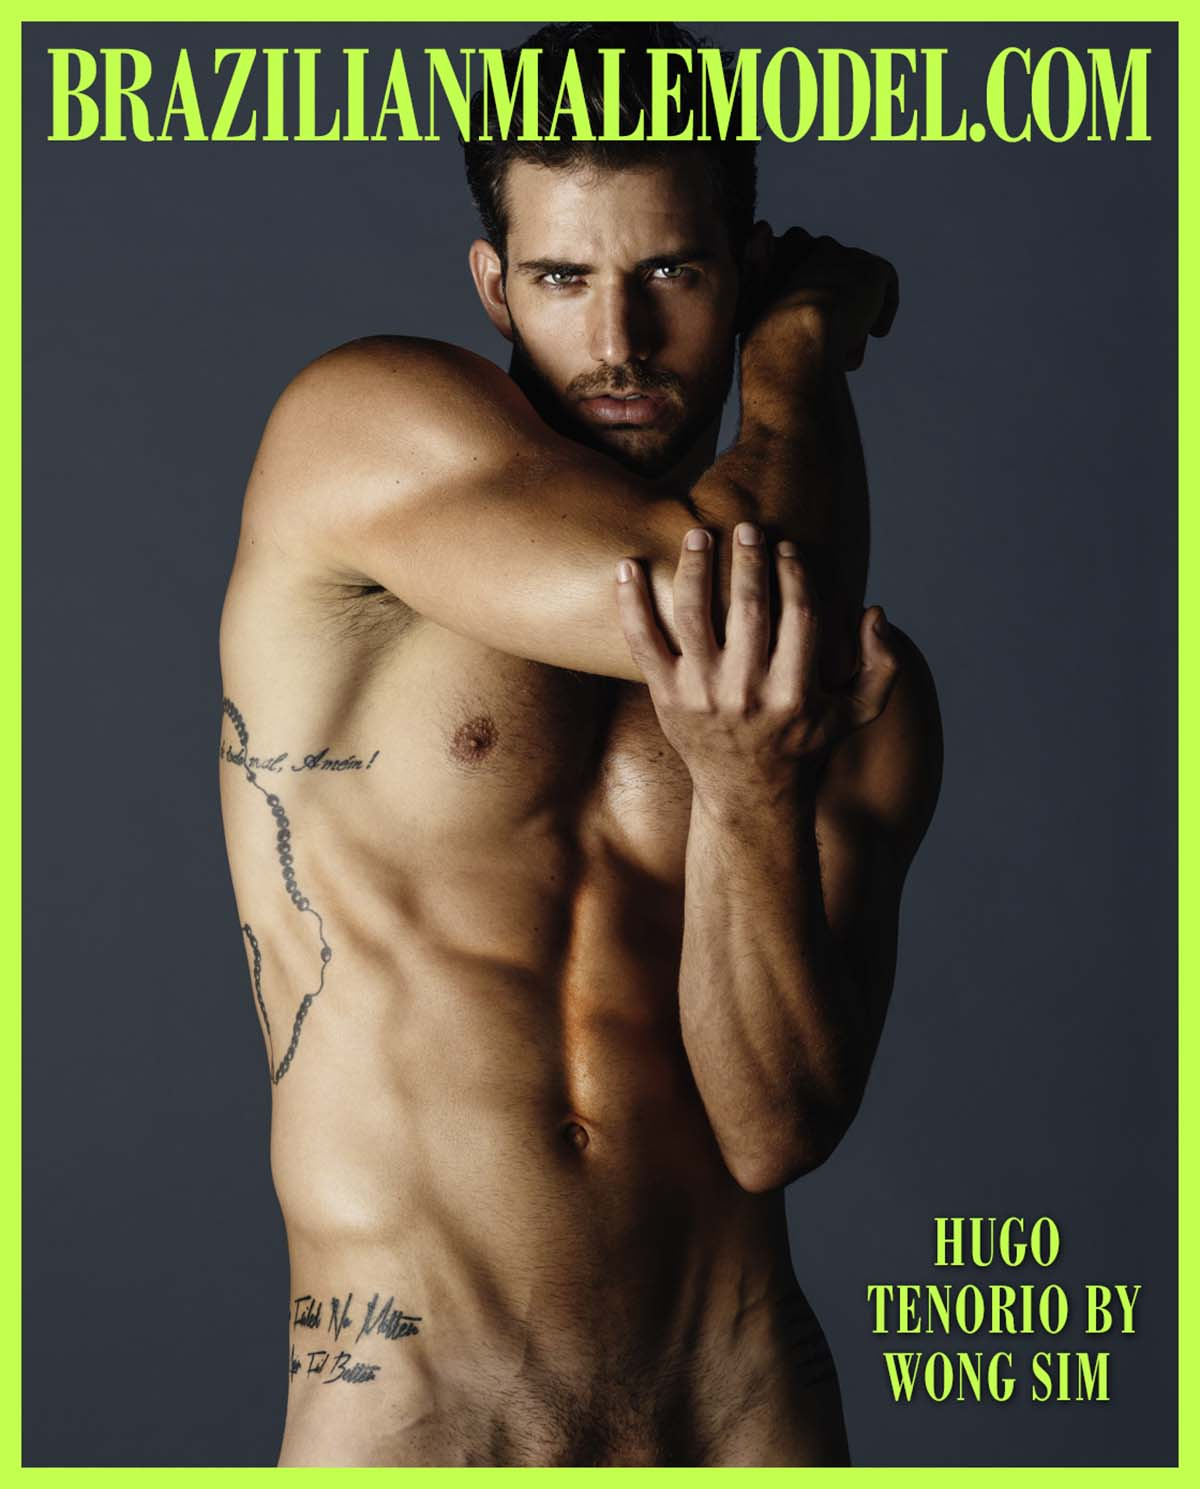 Hugo Tenorio X Wong Sim X Brazilian Male Model X YUP MAGAZINE